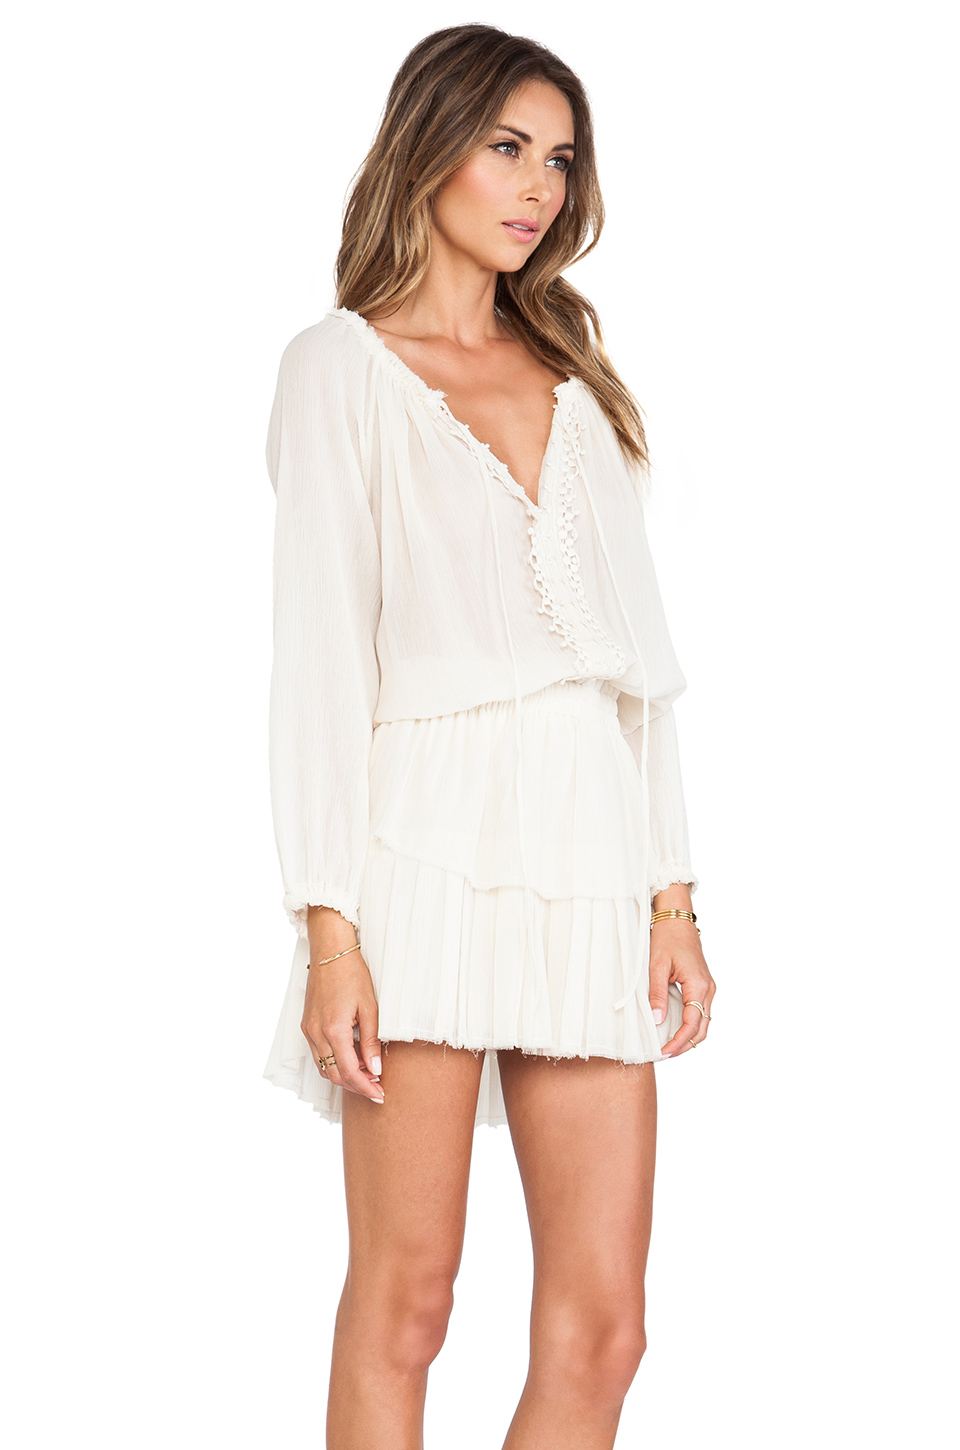 LoveShackFancy Popover Ruffle Mini Dress in Ivory from REVOLVEclothing.com